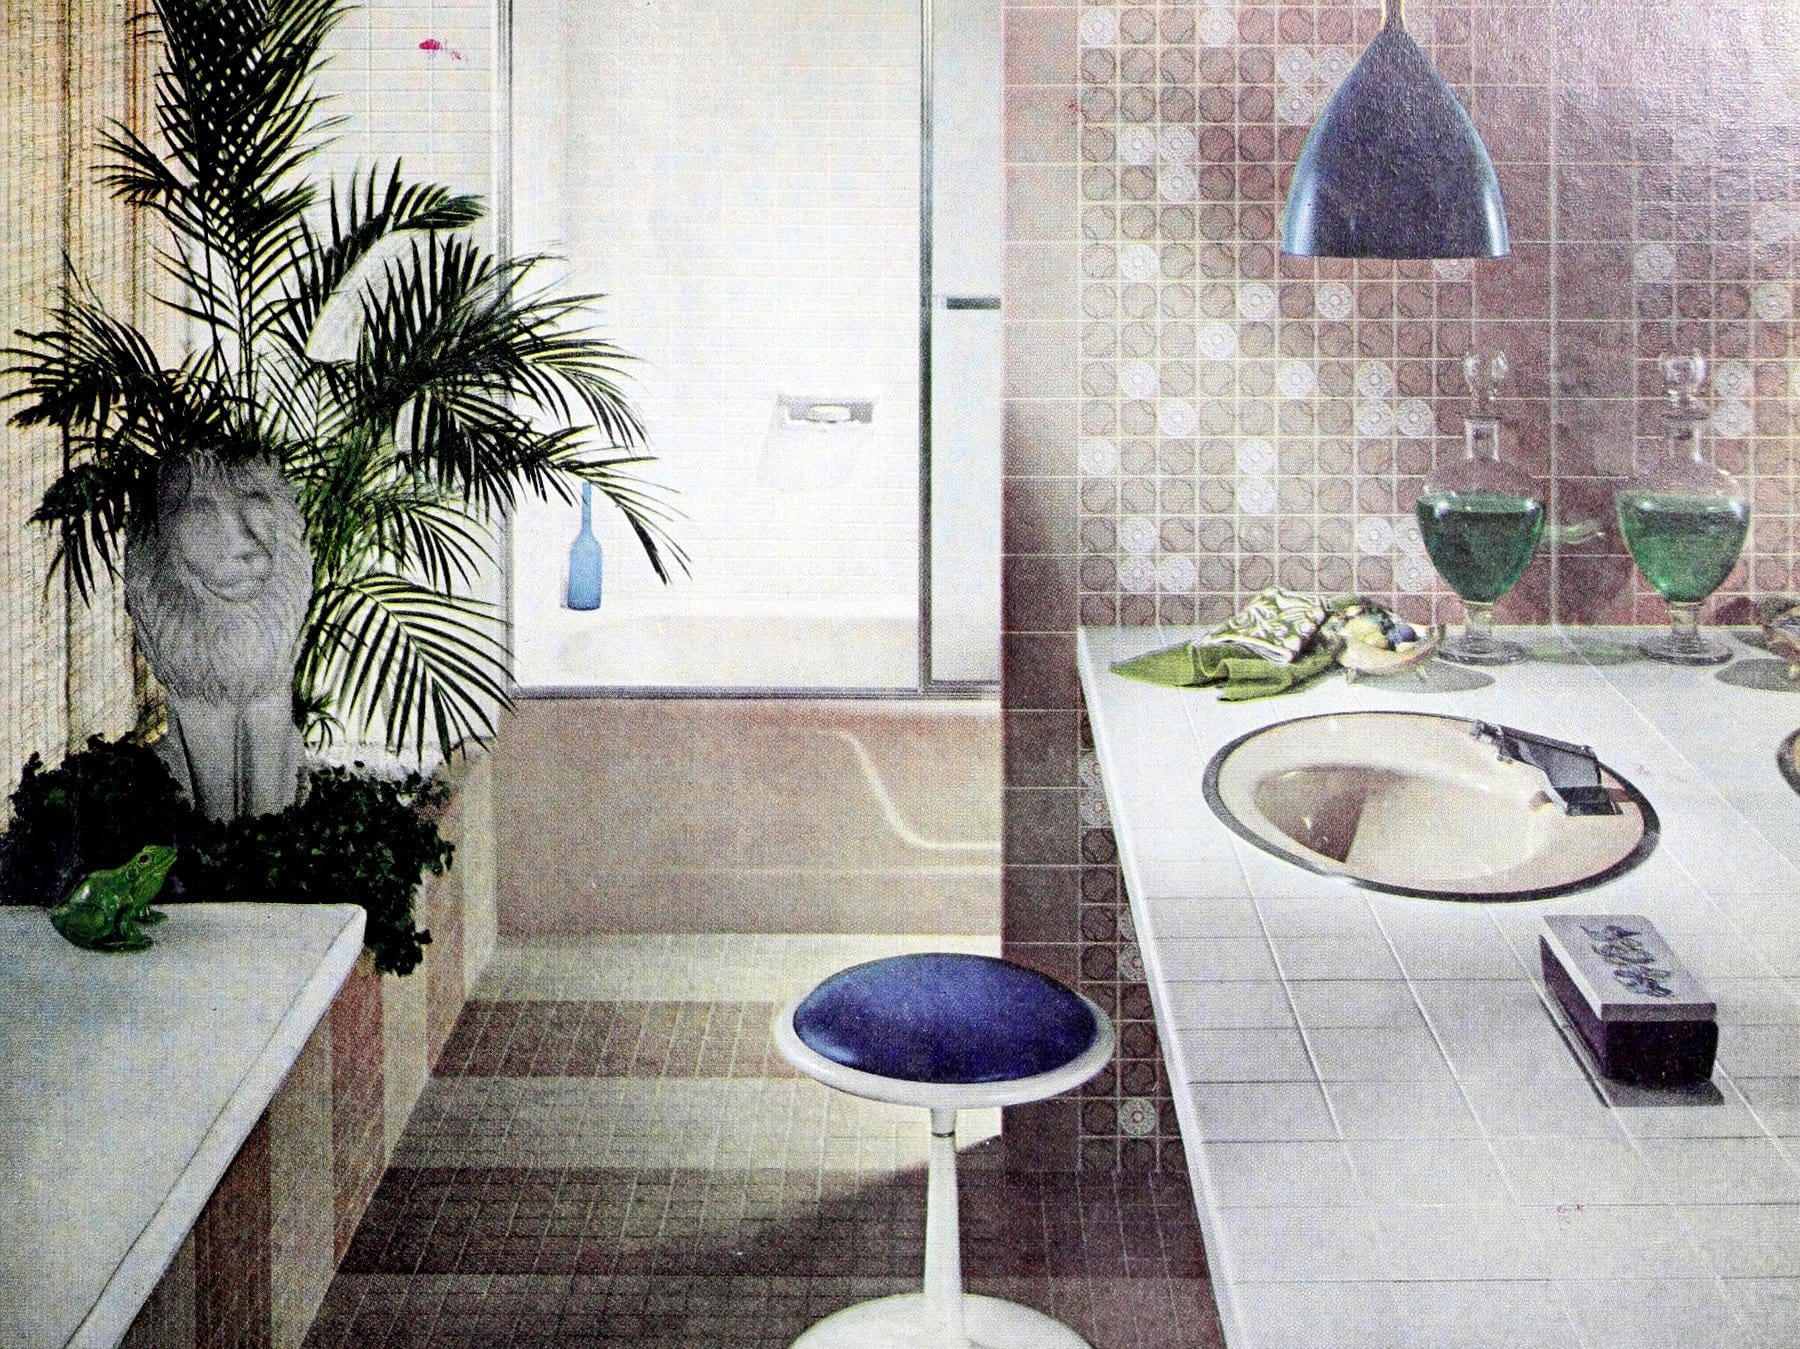 Muted brown and white tile bathroom with circle pattern tiles (1966)